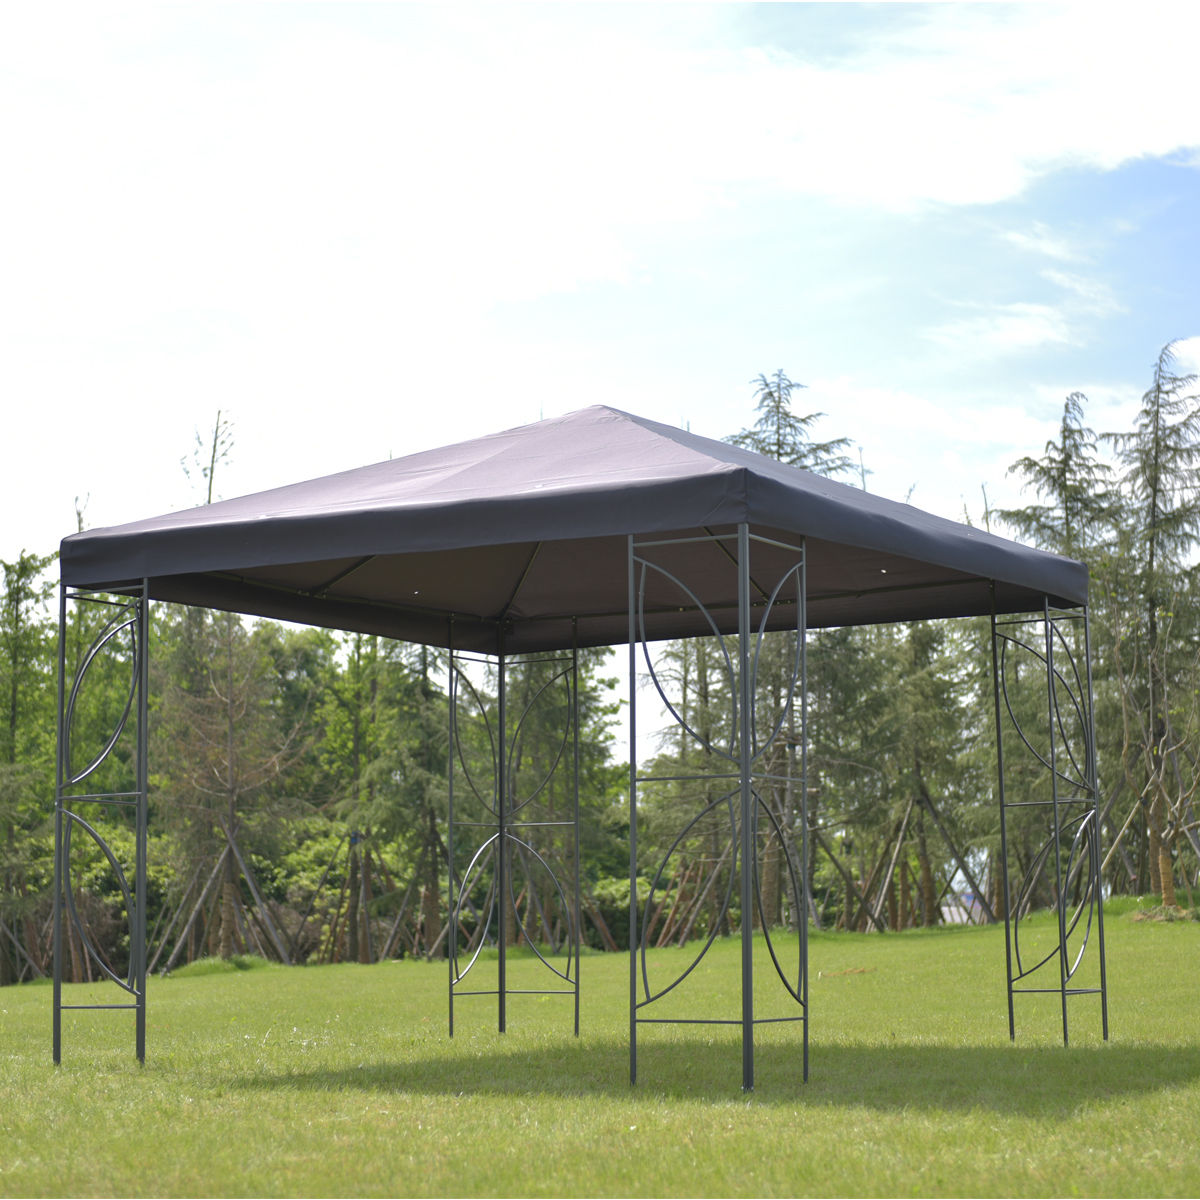 Costway Patio 10'x10' Square Gazebo Canopy Tent Steel Frame Shelter Awning W Gray Cover by Costway